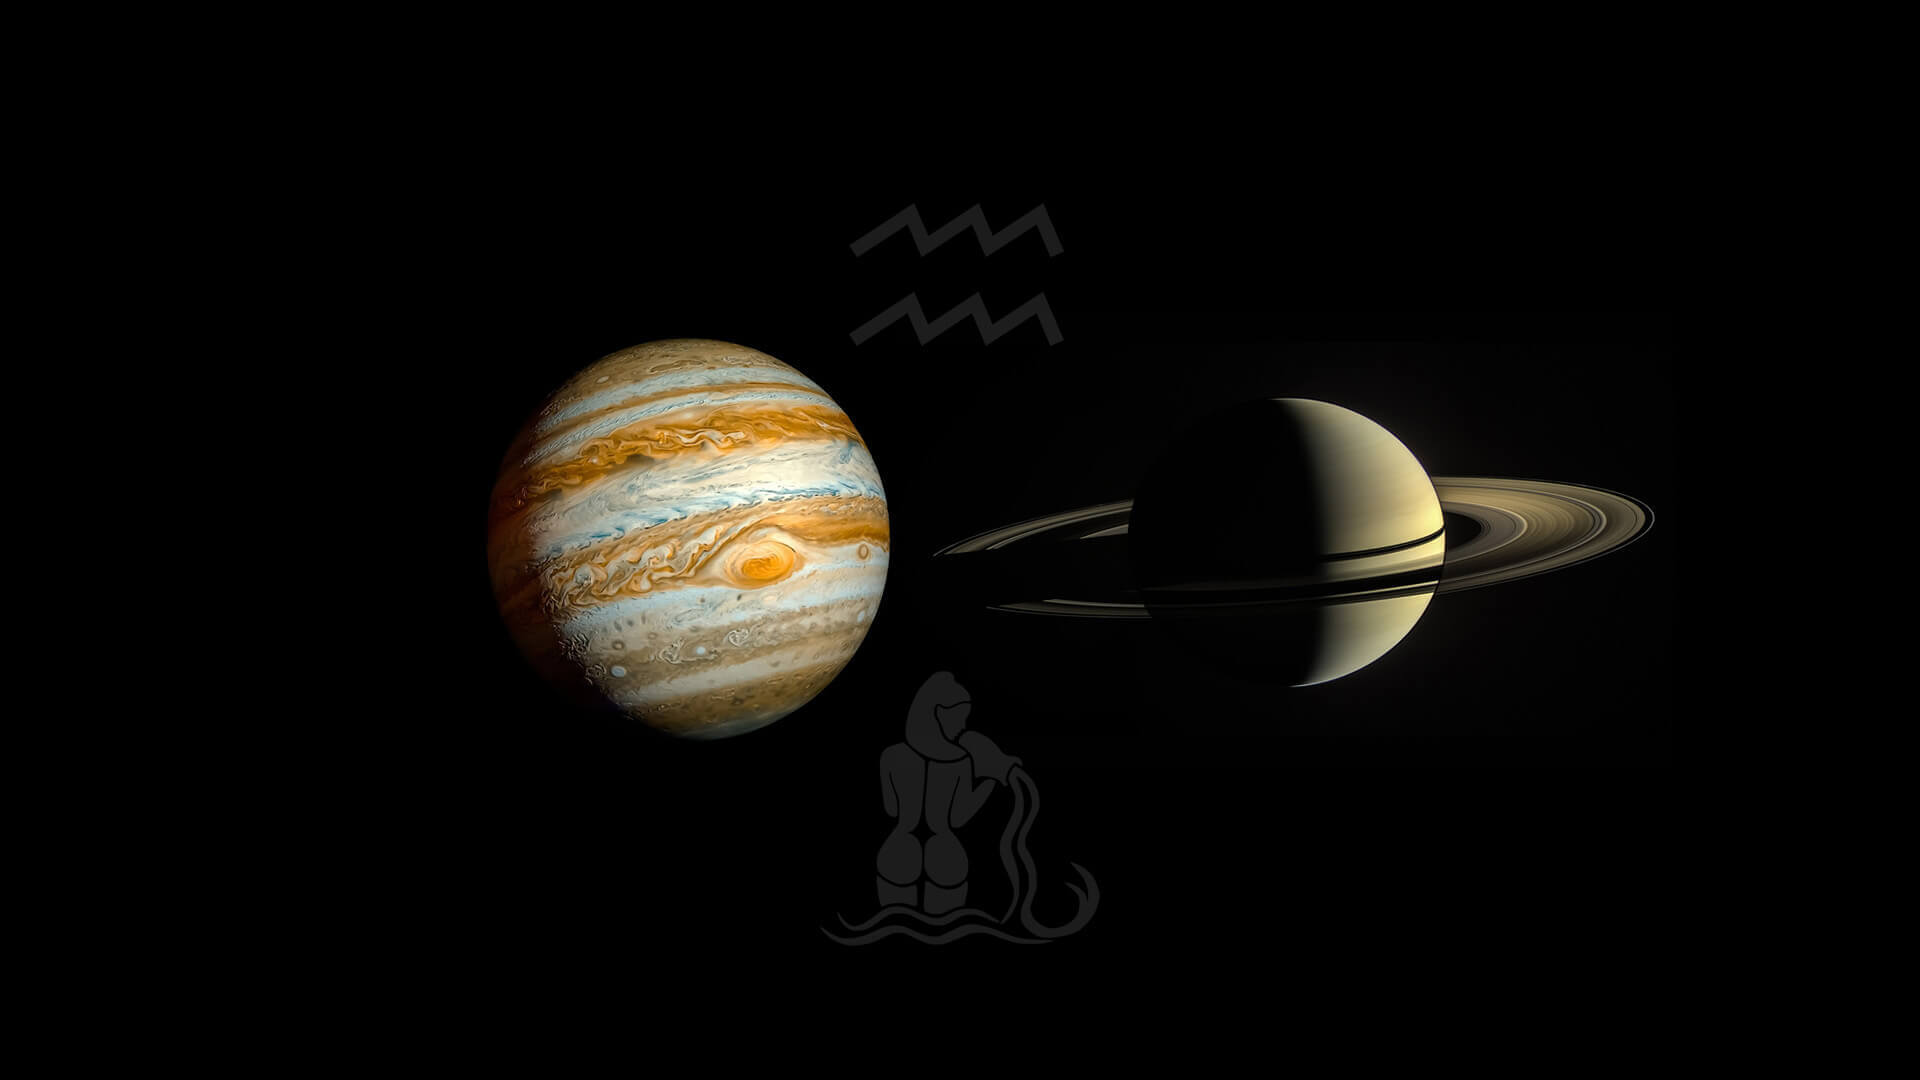 Jupiter conjunct Saturn in Aquarius